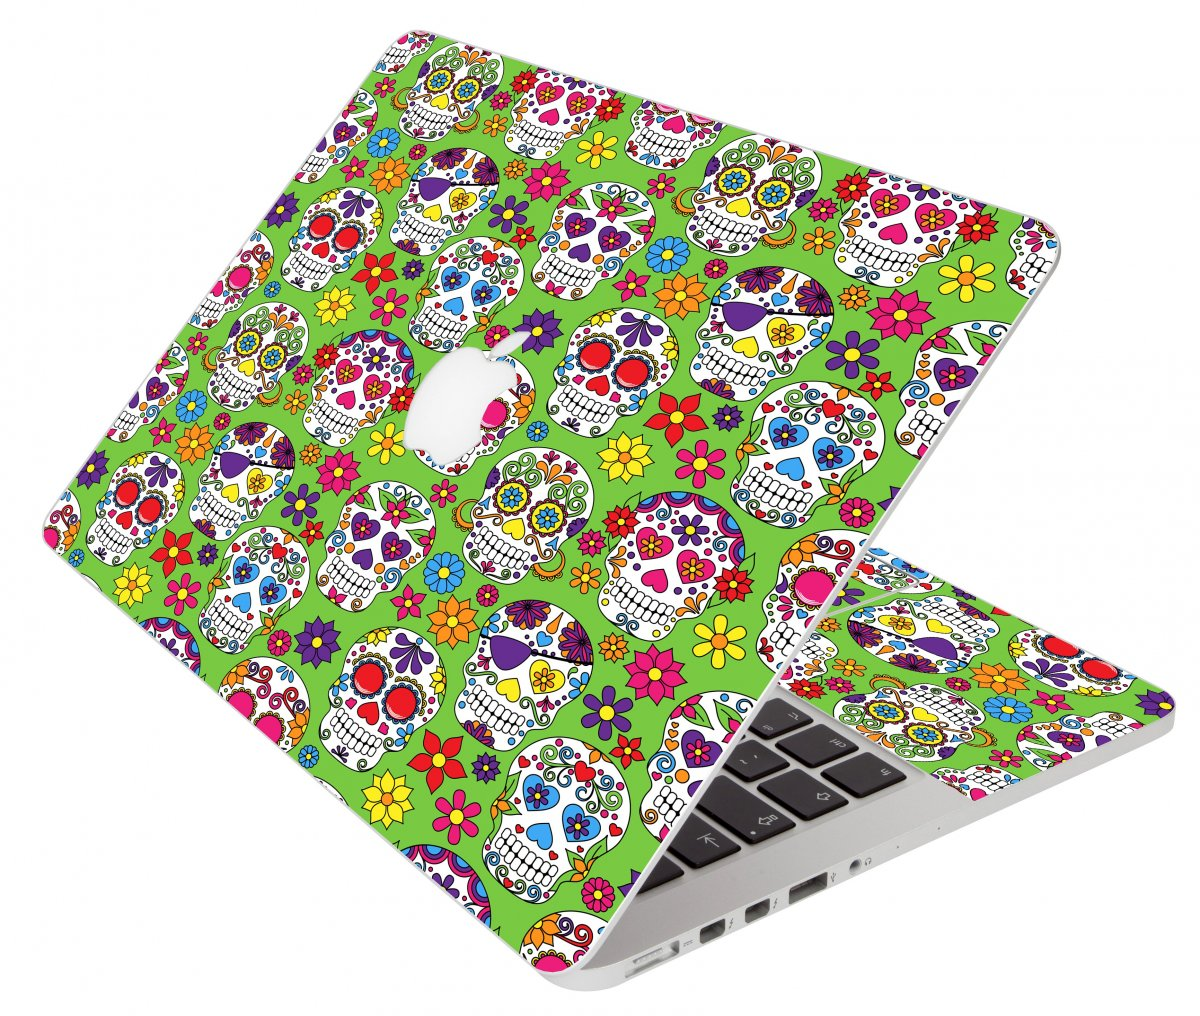 Green Sugar Skulls Apple Macbook Air 11 A1370 Laptop Skin